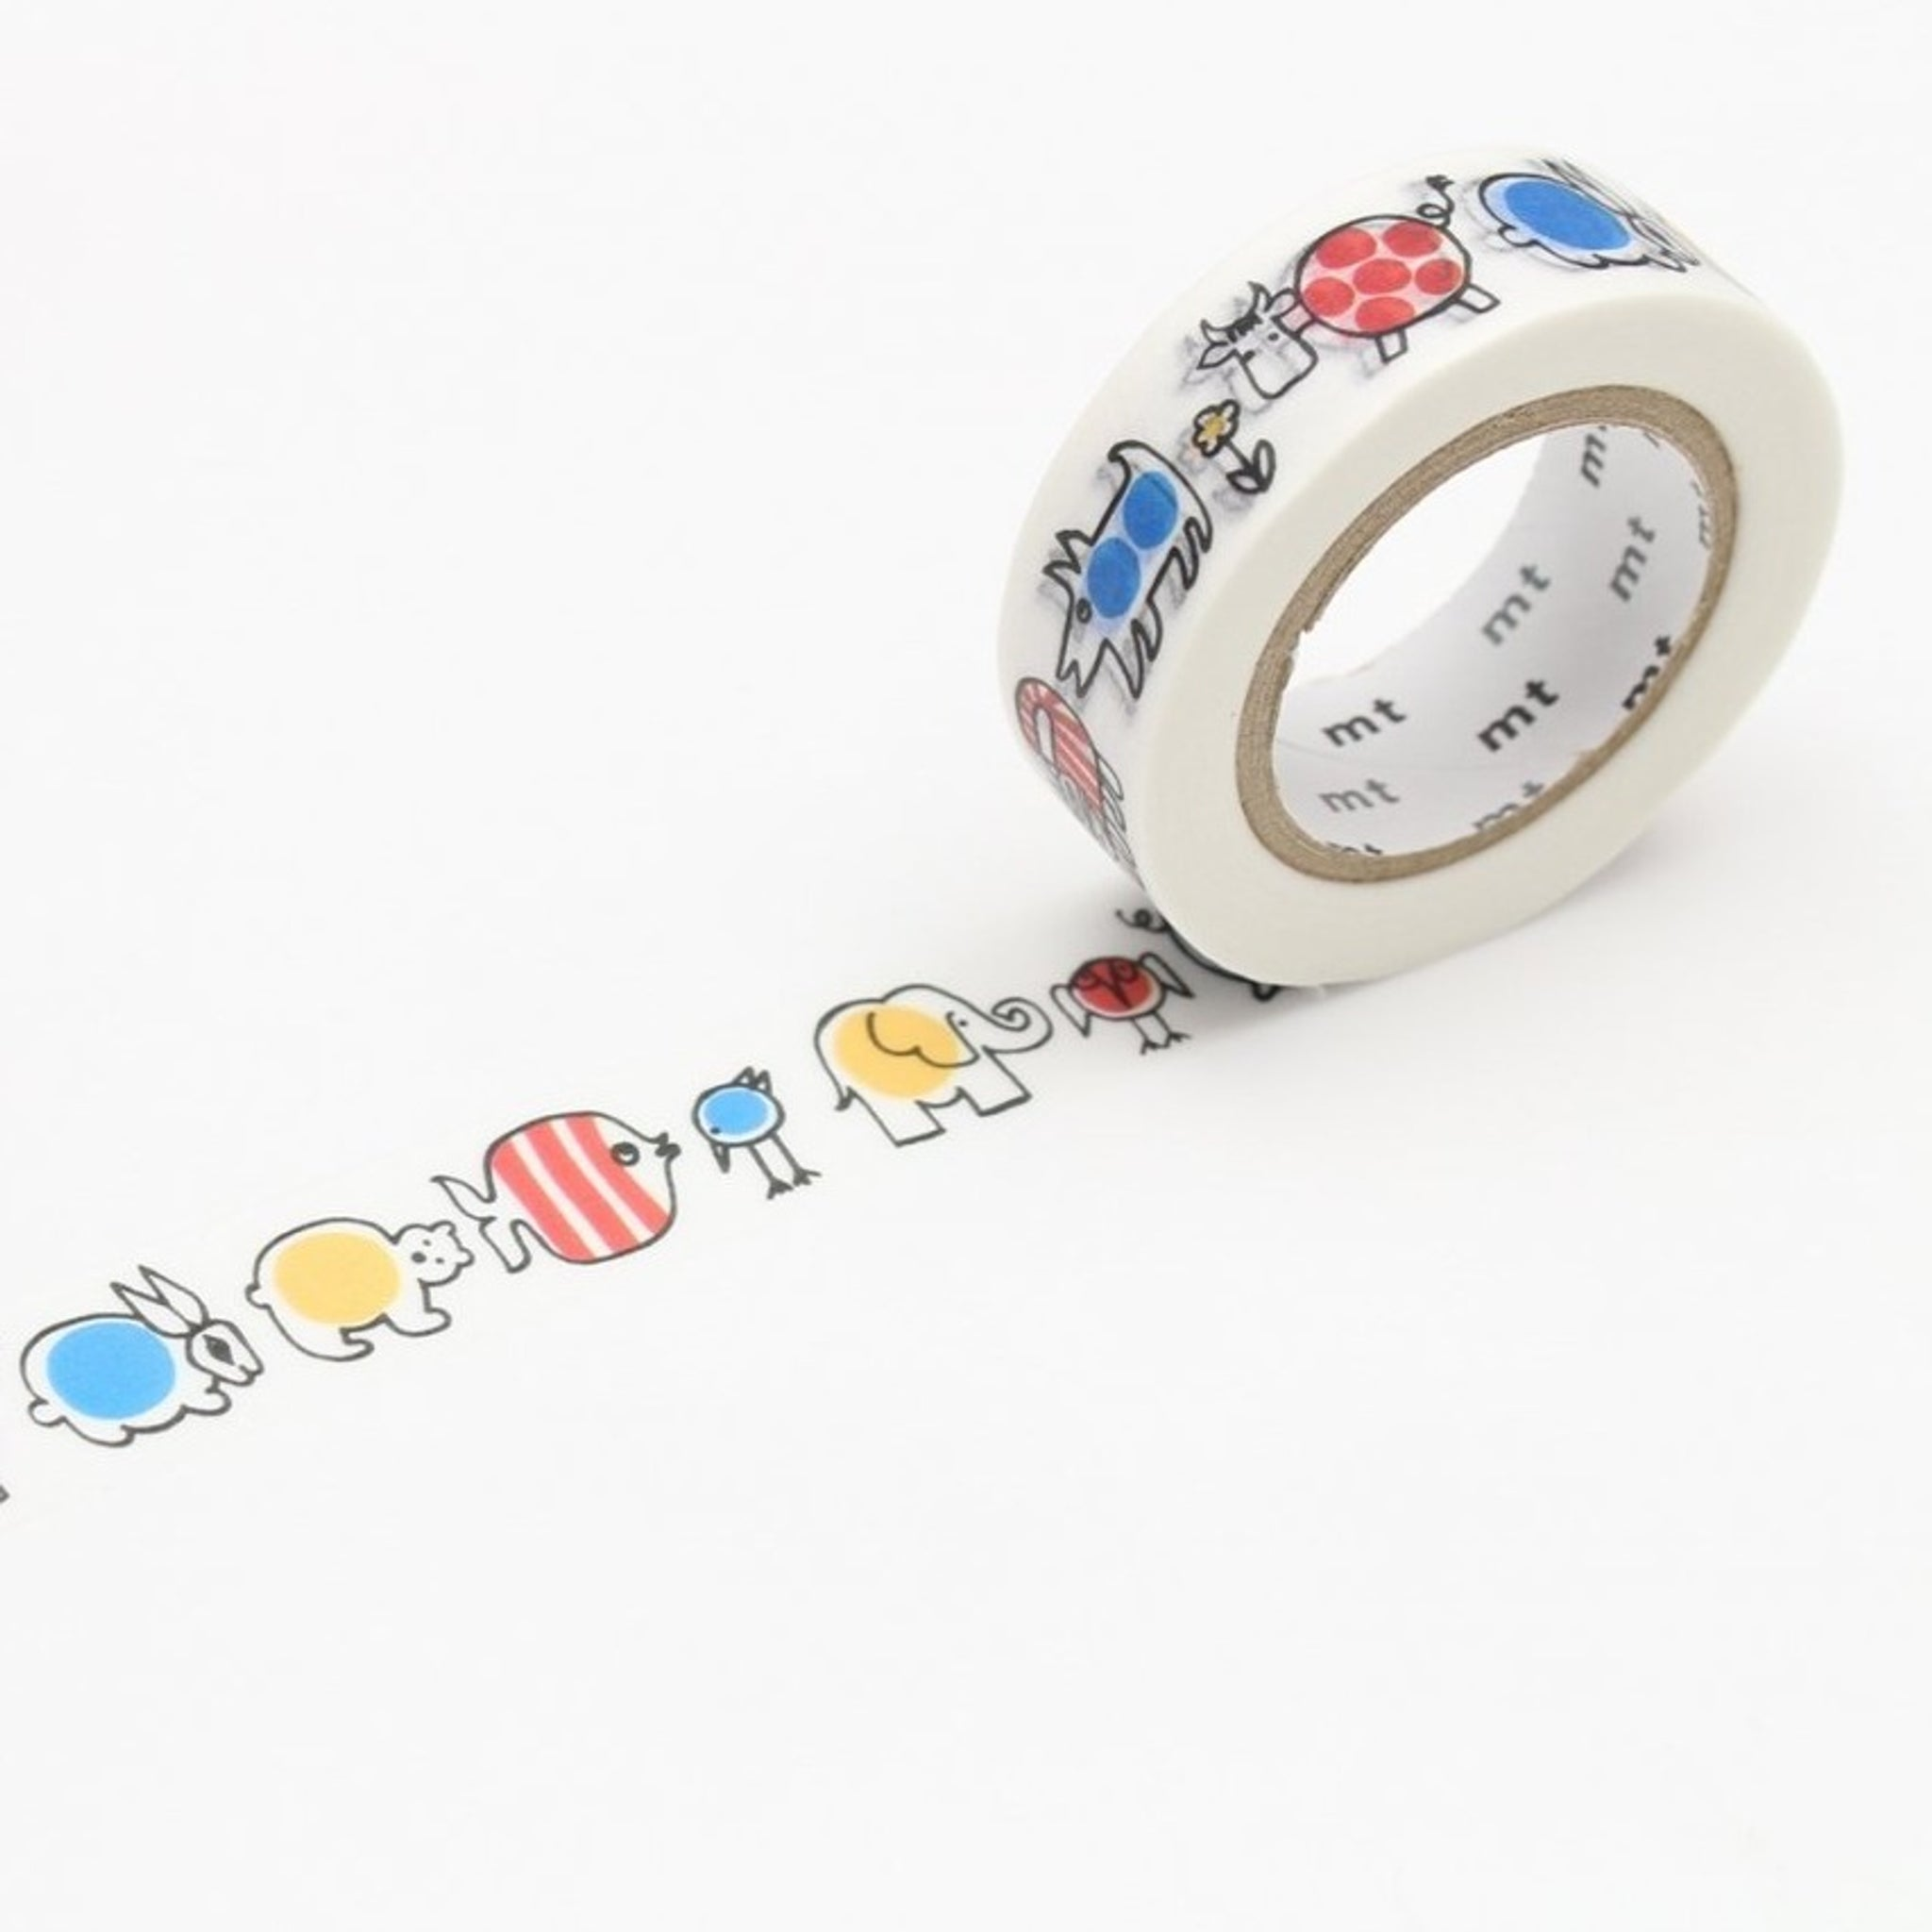 mt × Lisa Larson - Baby Mikey washi tape